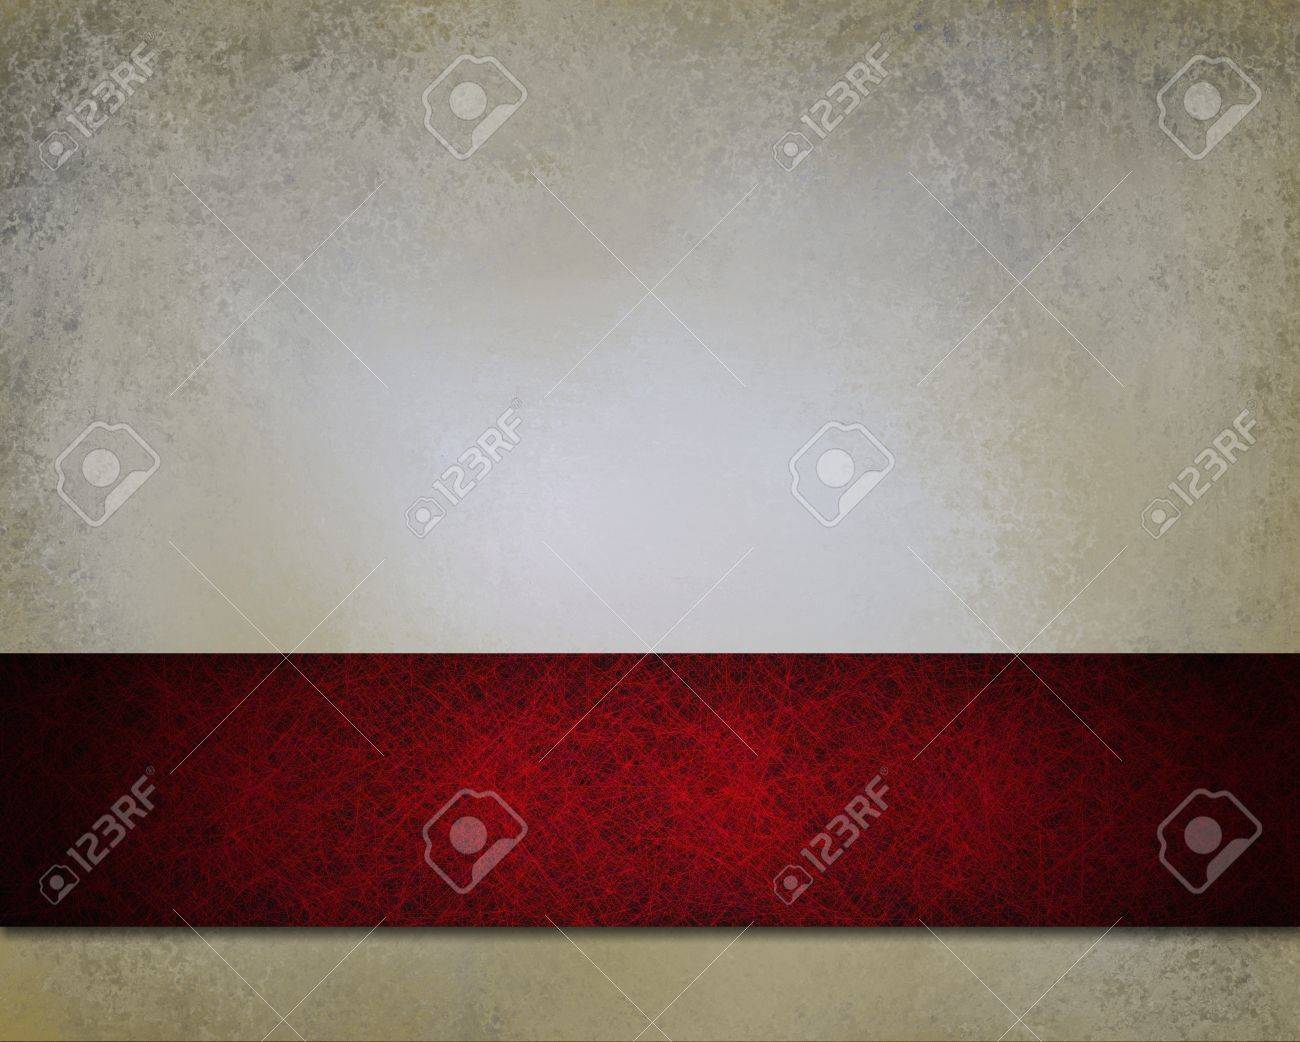 abstract white background grunge red ribbon stripe with vintage grunge background texture and web template layout design and vintage wallpaper texture and copy space for ad or brochure Stock Photo - 14674421